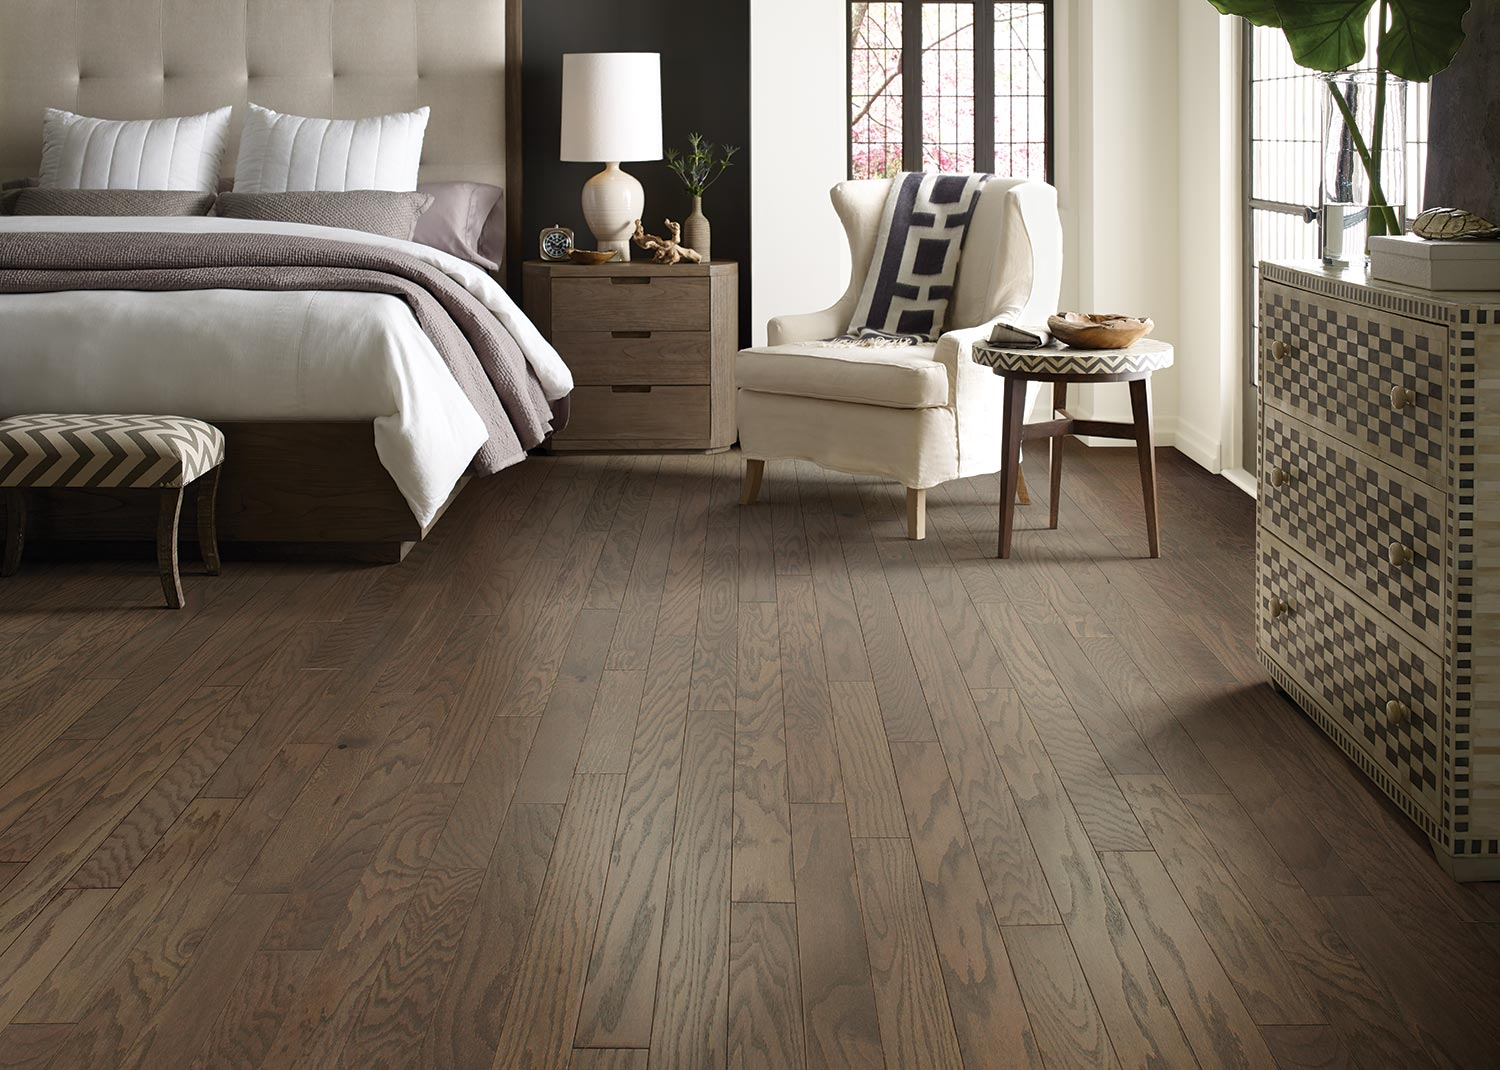 Wood flooring in bedroom